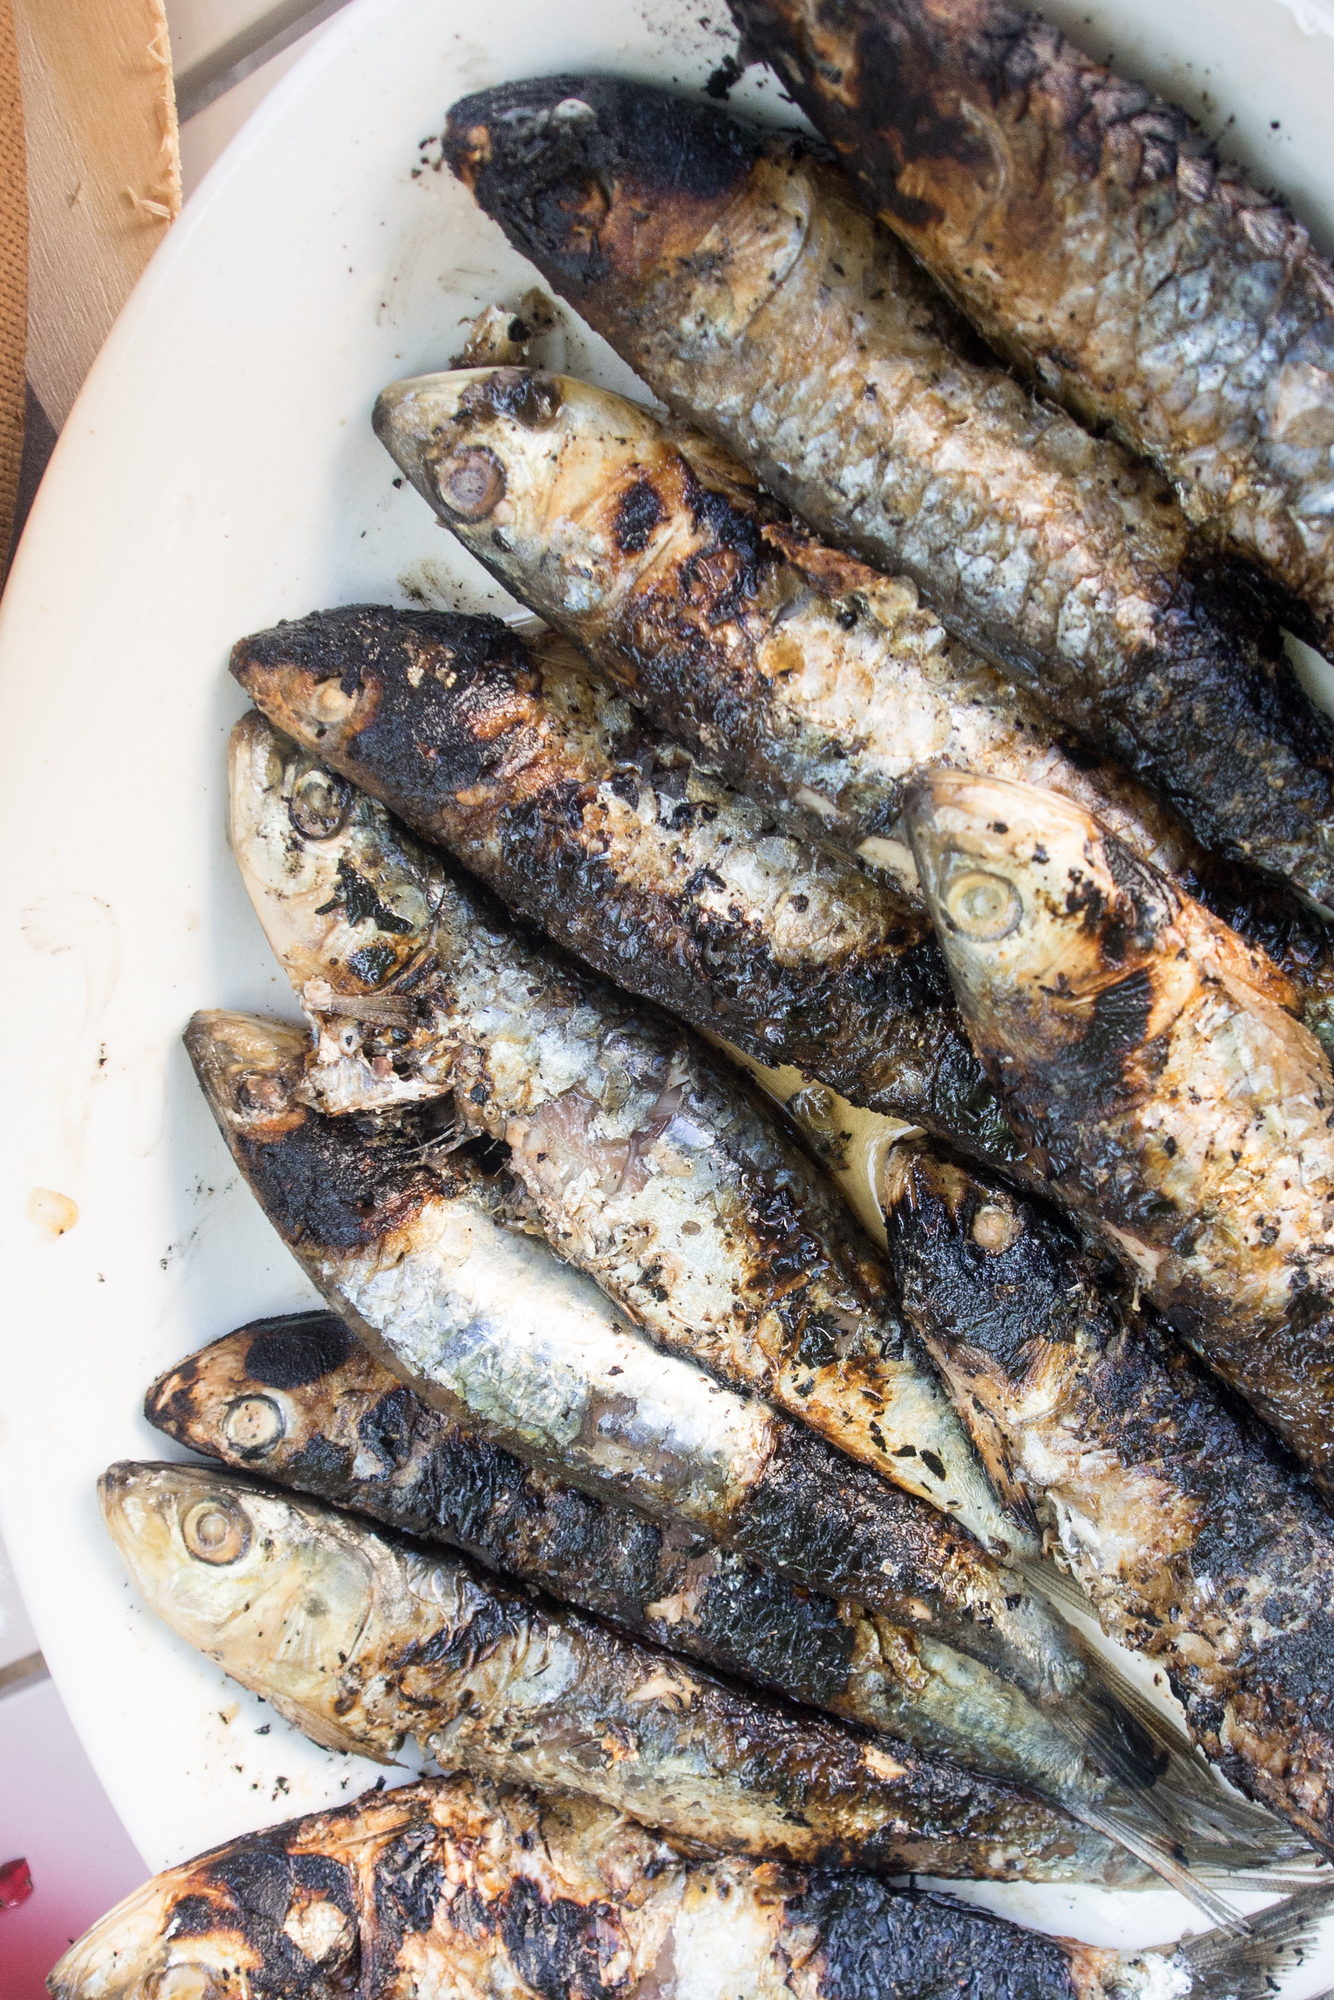 Grilled sardines are the perfect compliment to Vinho Verde red wine, learn more about this underrated wine.